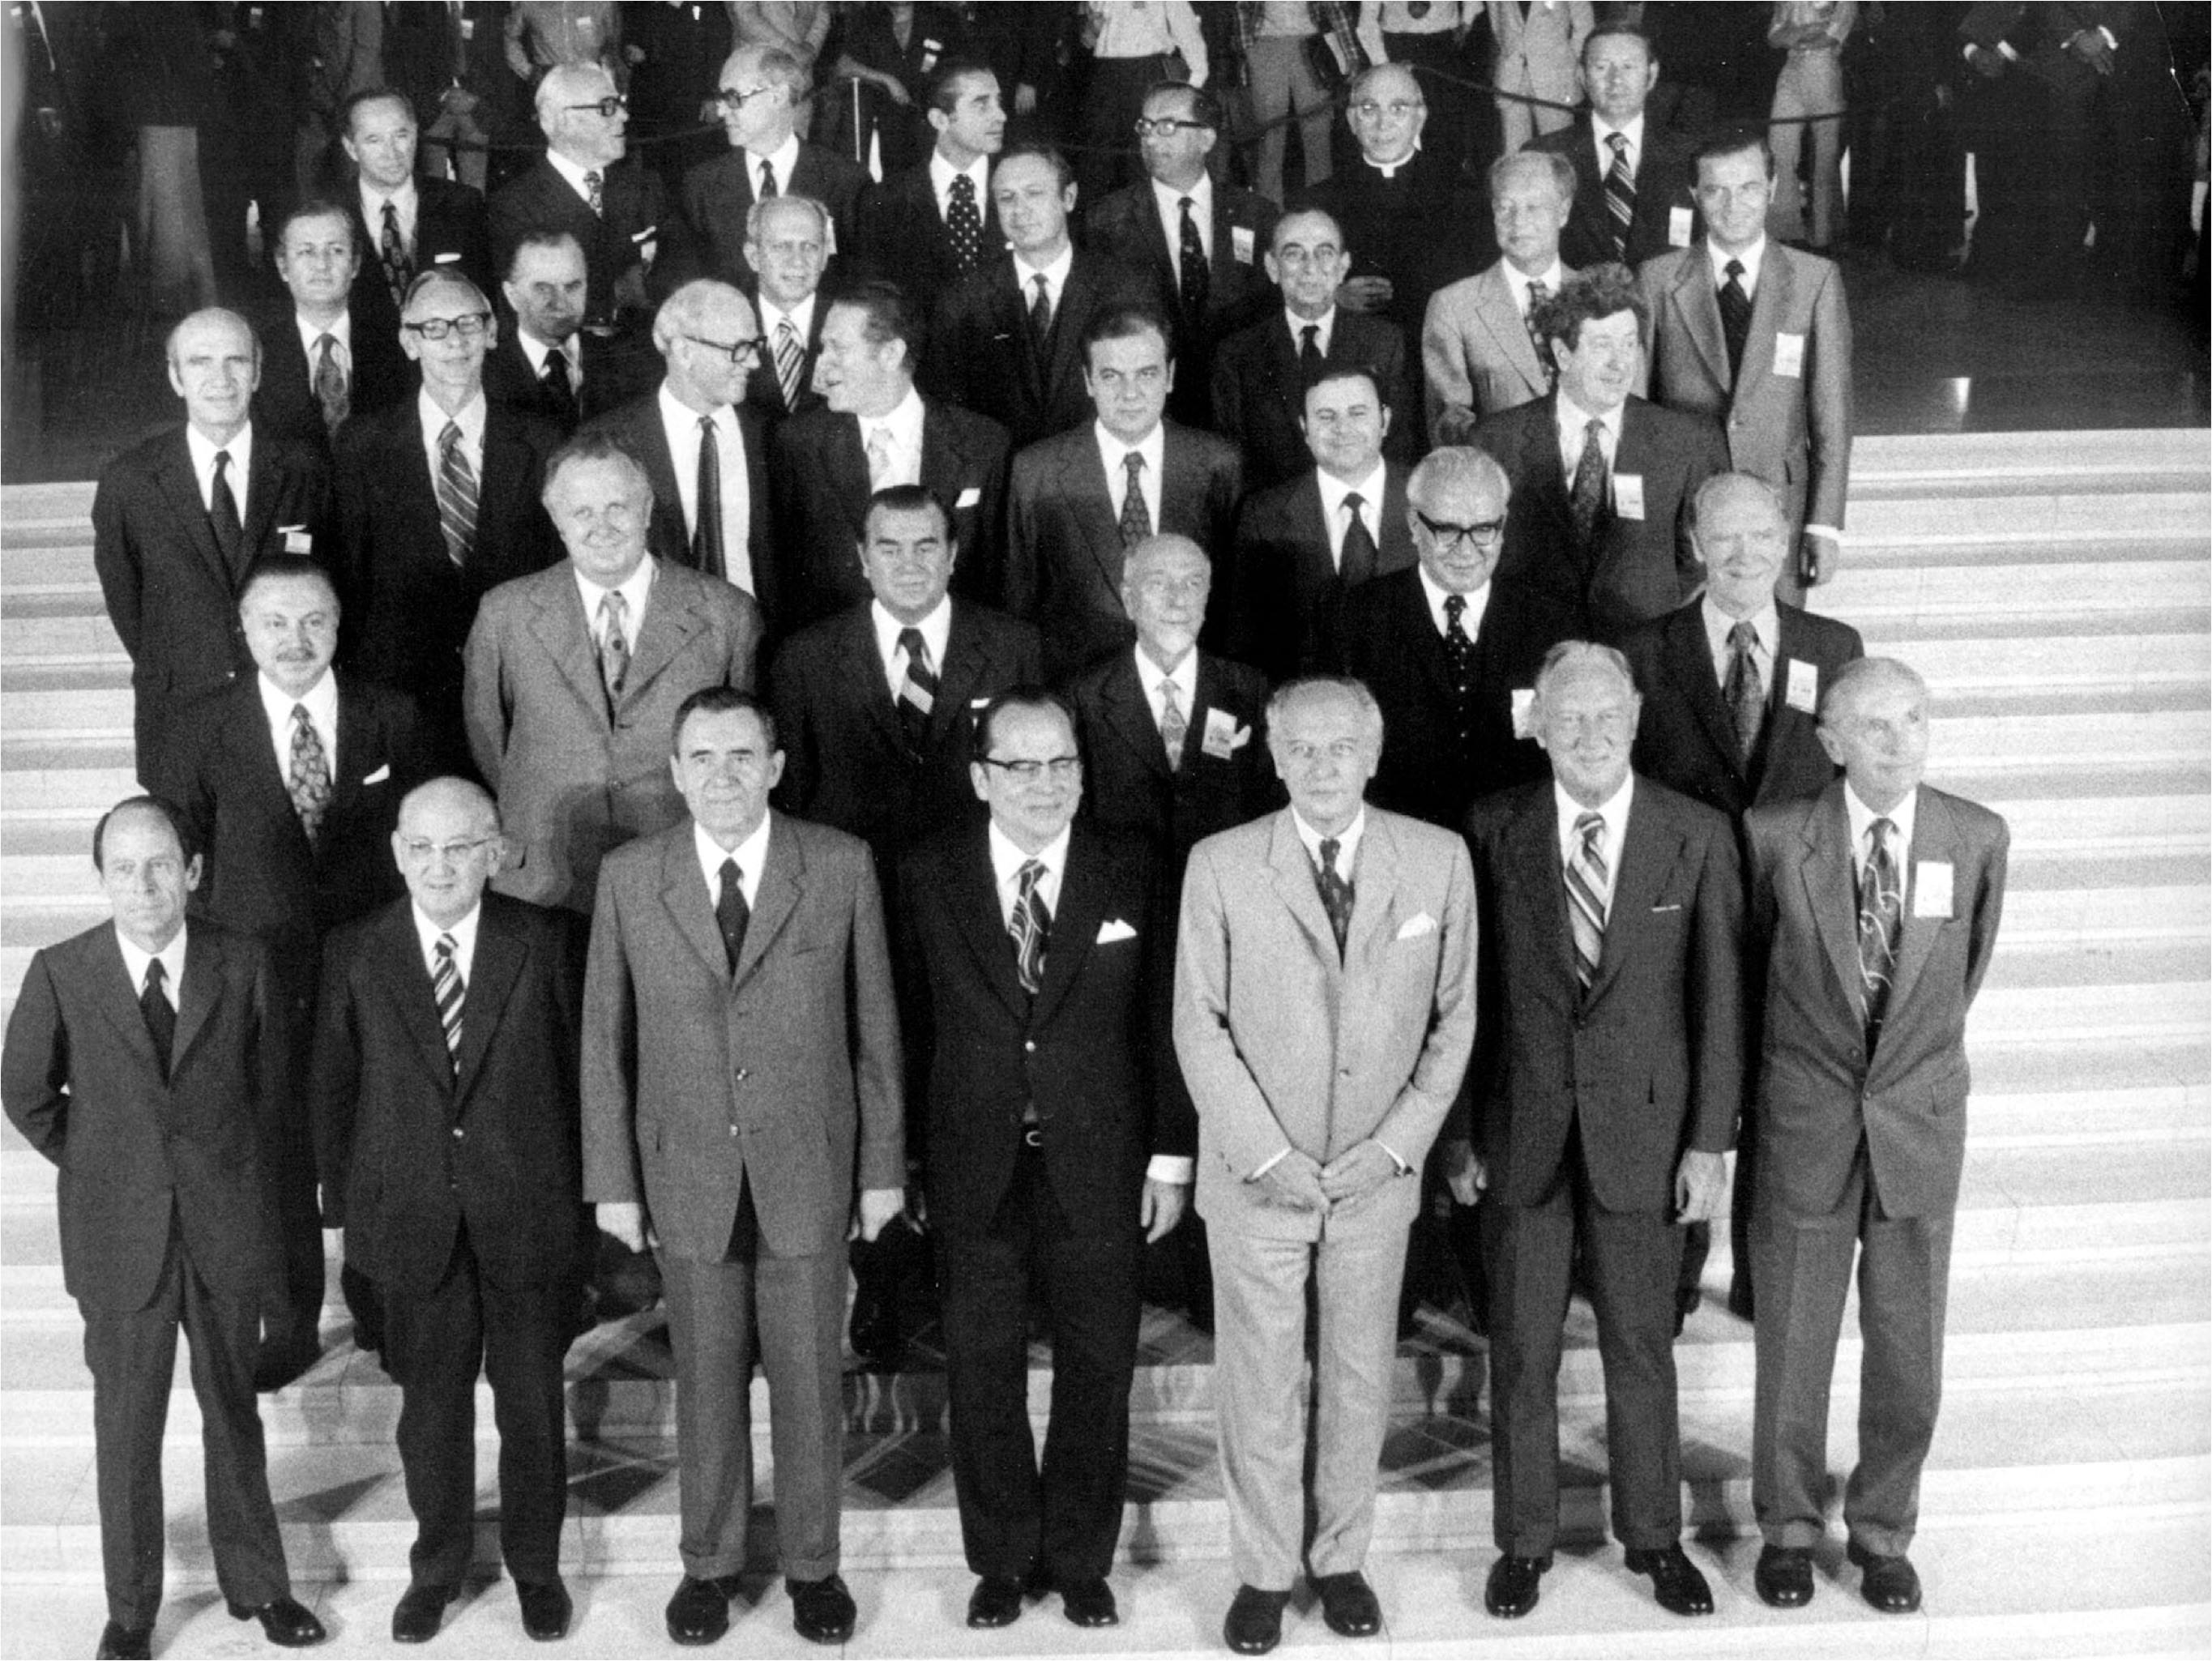 Thirty-four of the foreign ministers who negotiated the Helsinki Accords gathered in this joint 1973 photo in Finland.